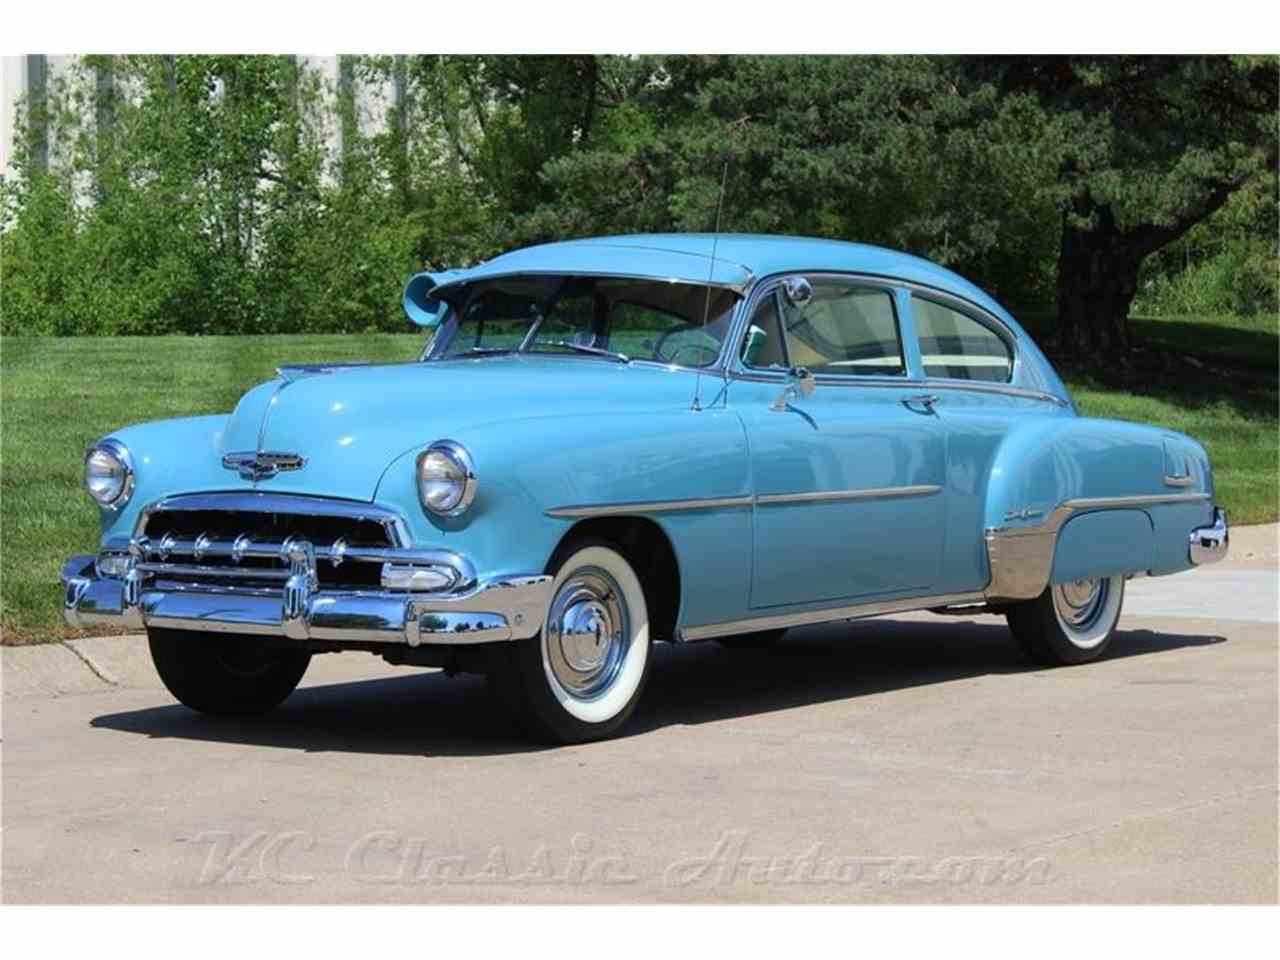 Chevrolet Bel Air Fleetline Deluxe Automatic Air Conditioner - Automatic classic cars